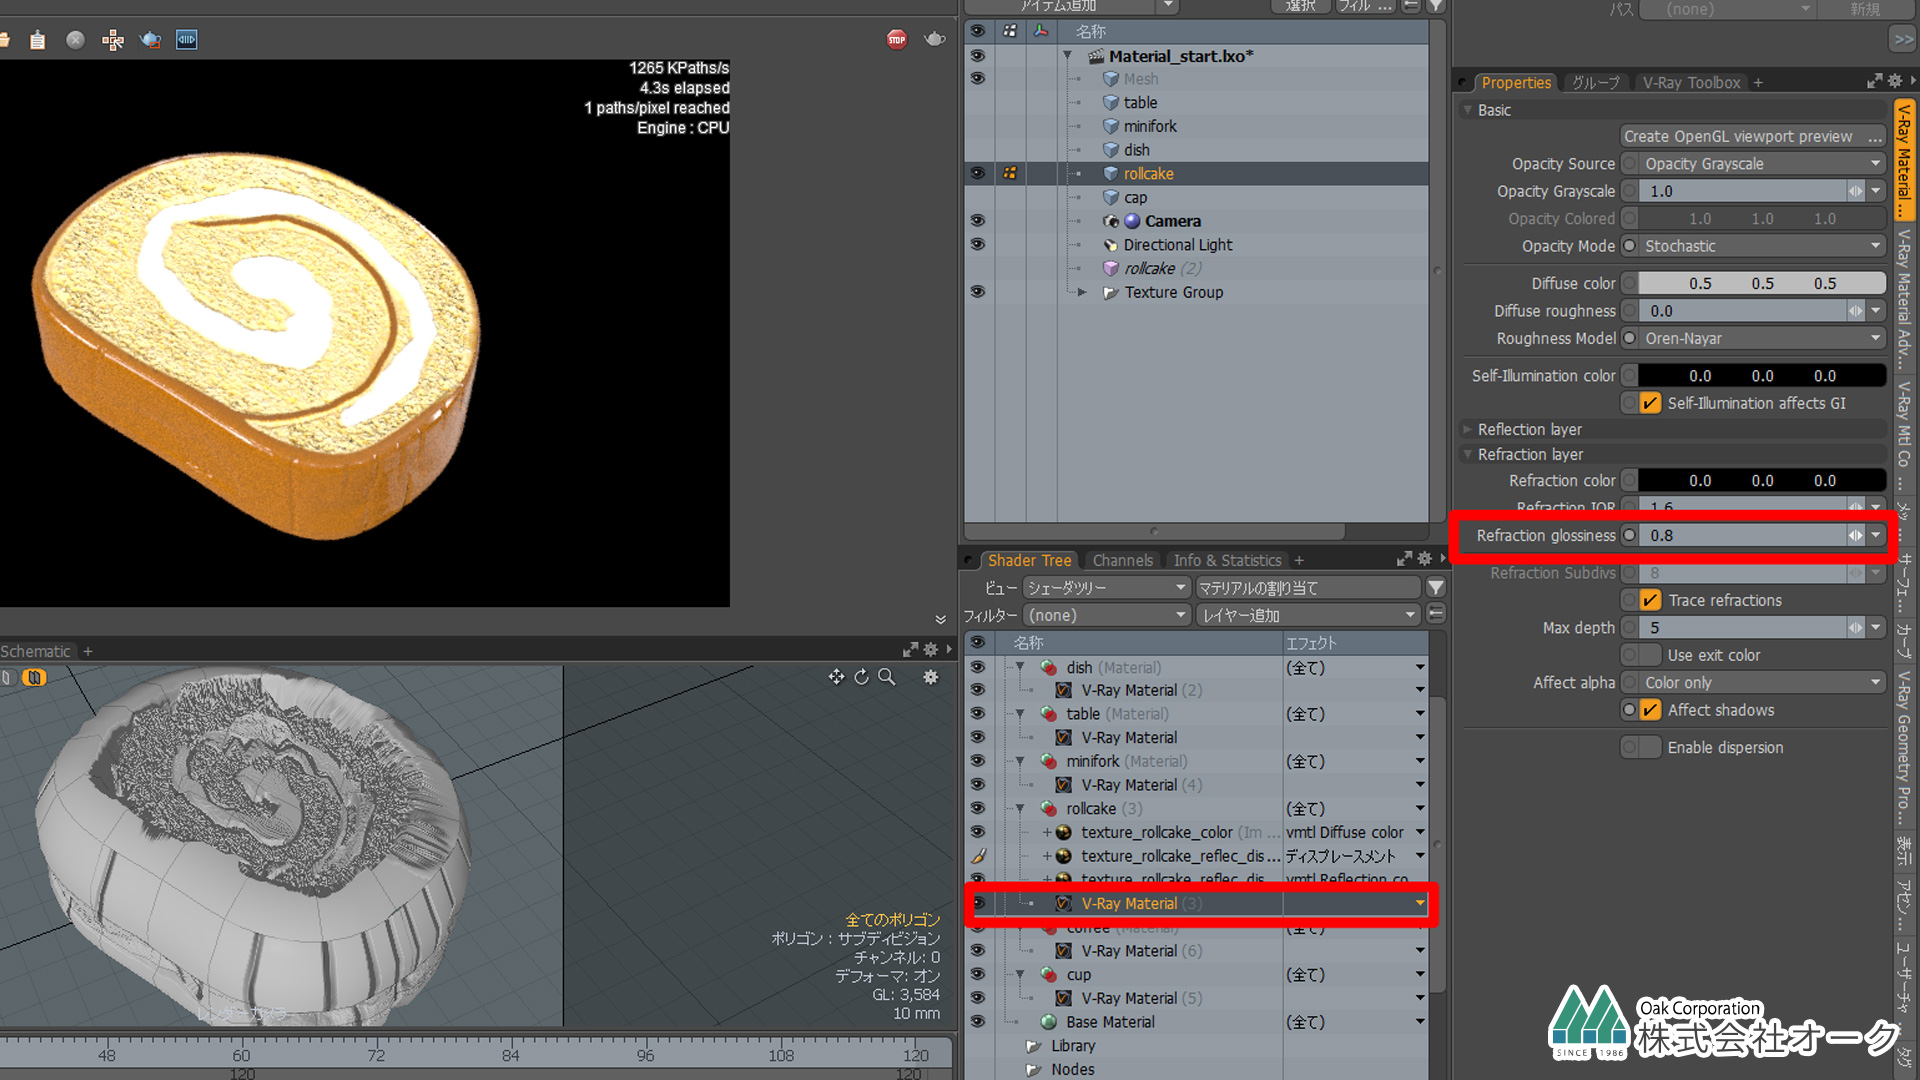 V-Ray Refraction glossiness